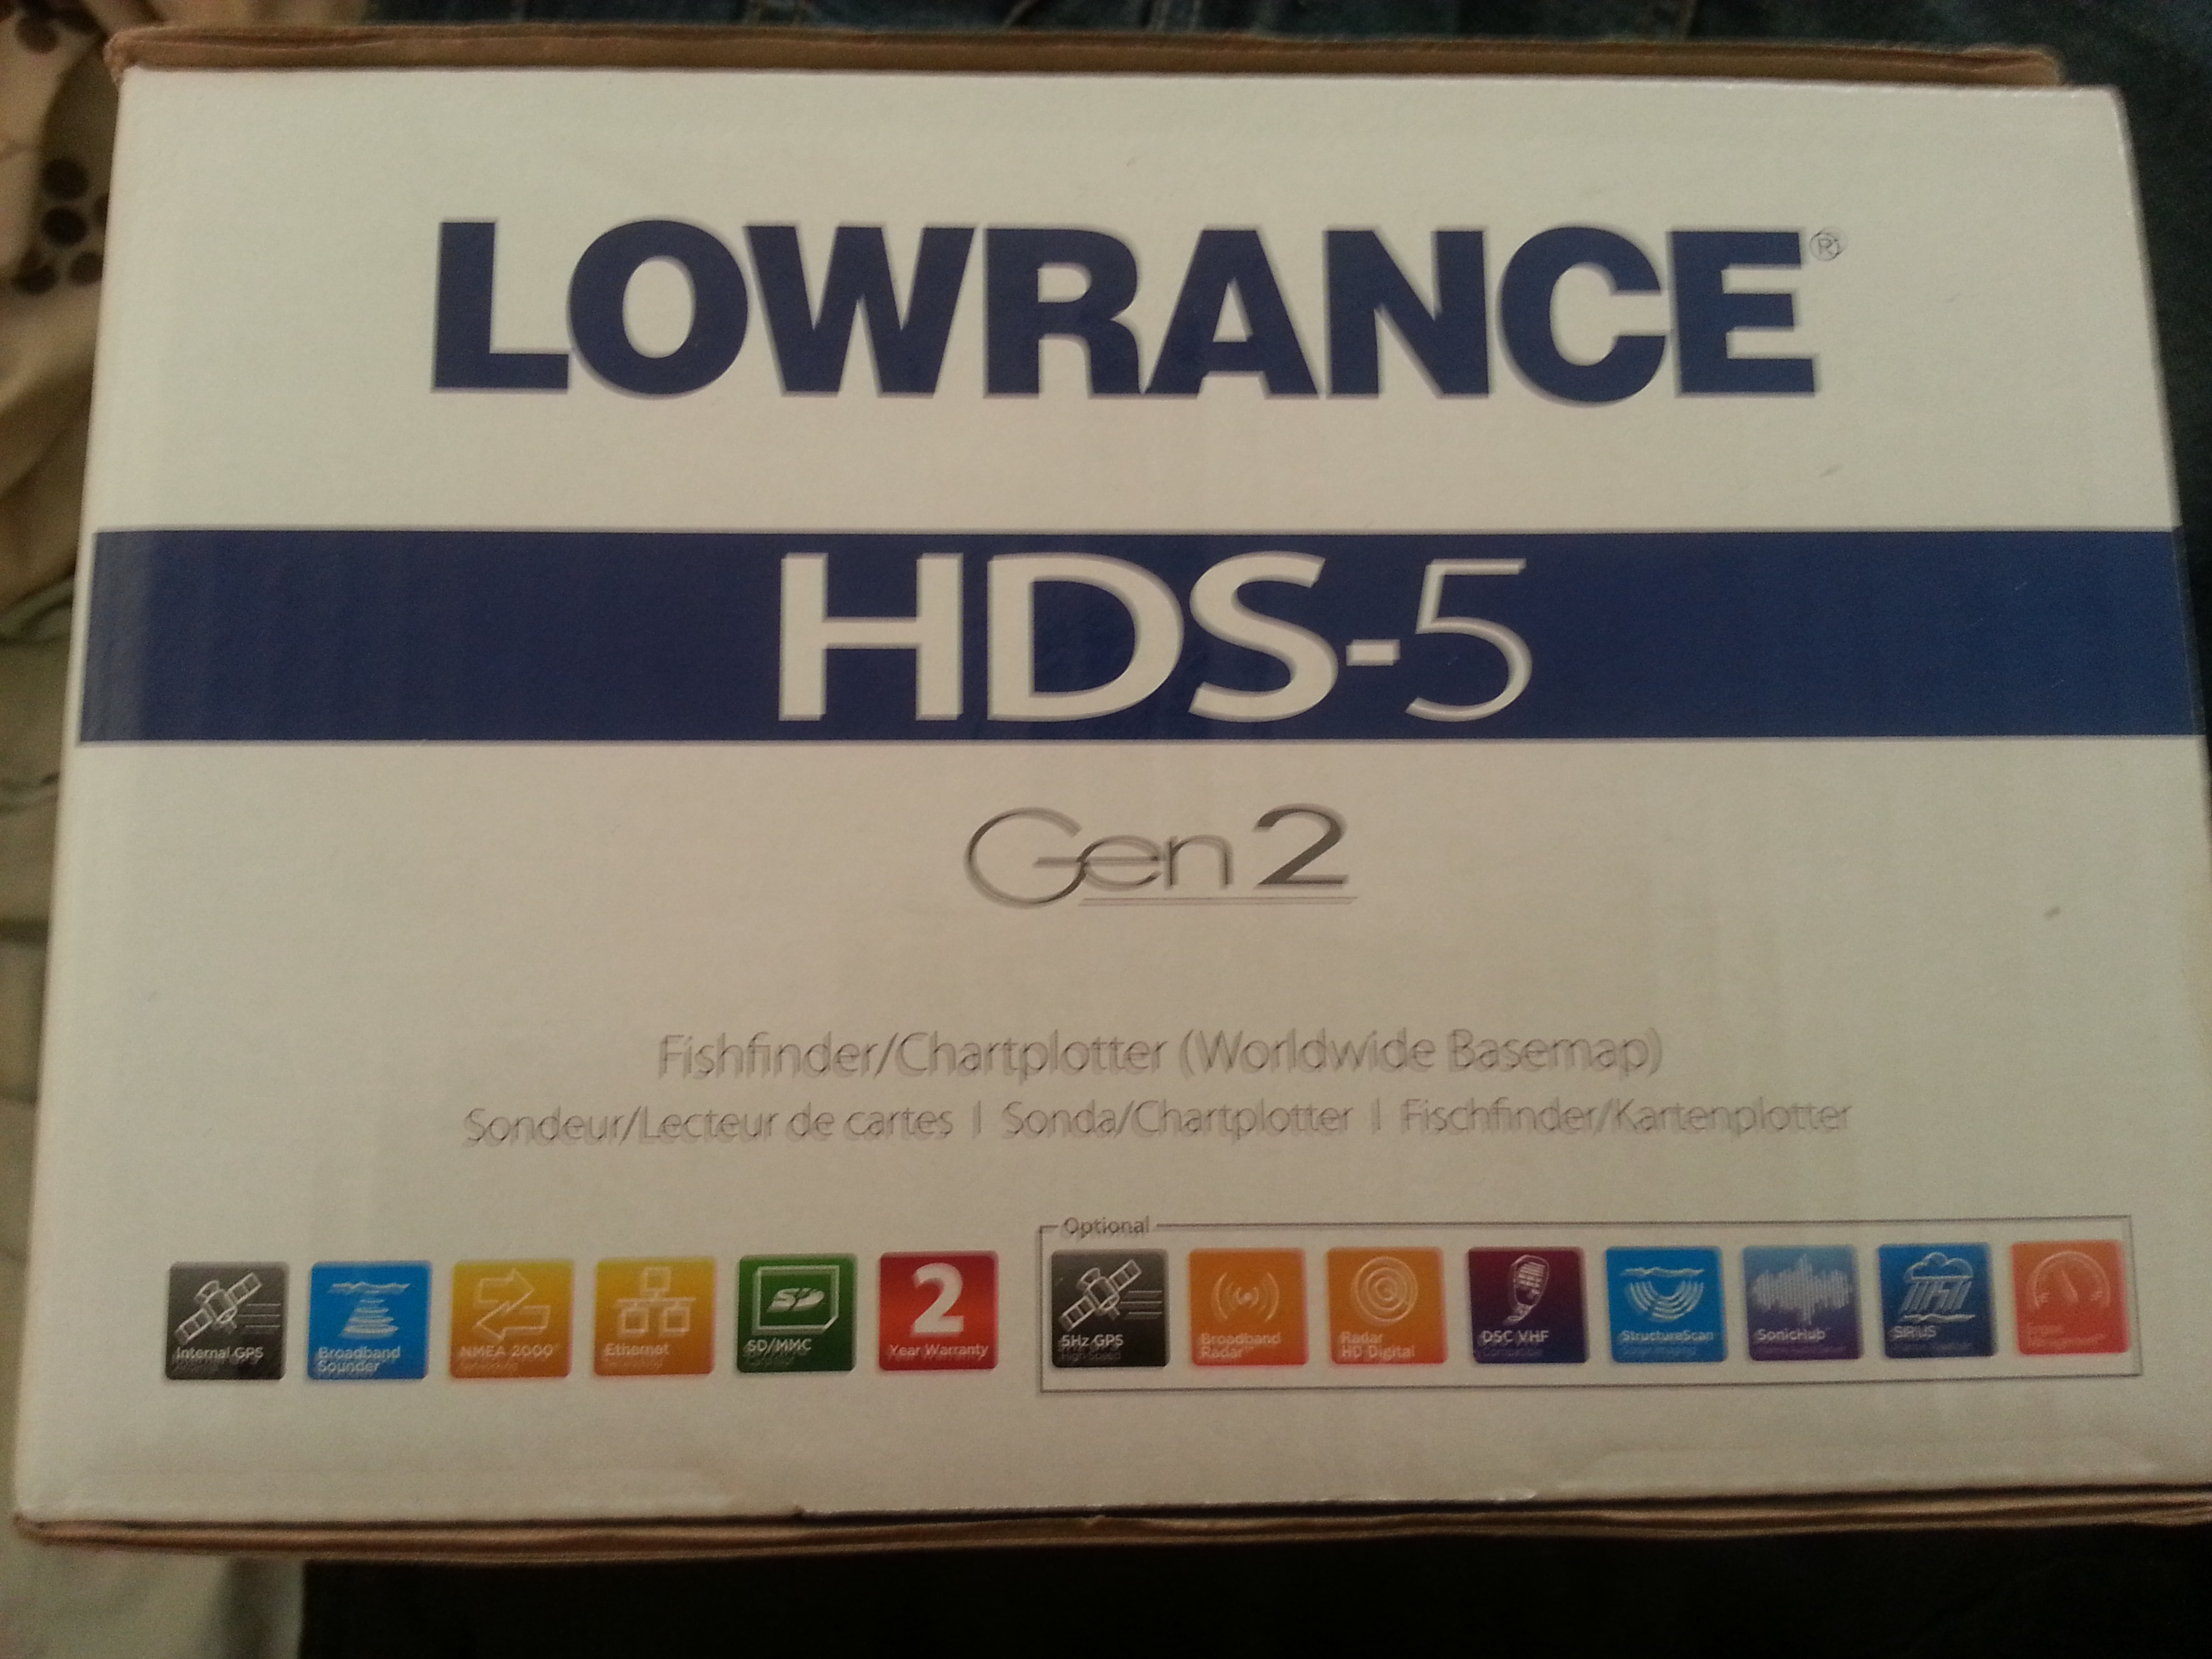 Brand New Lawrence Hds5 Gen 2 Fishfinder Gps Combo For